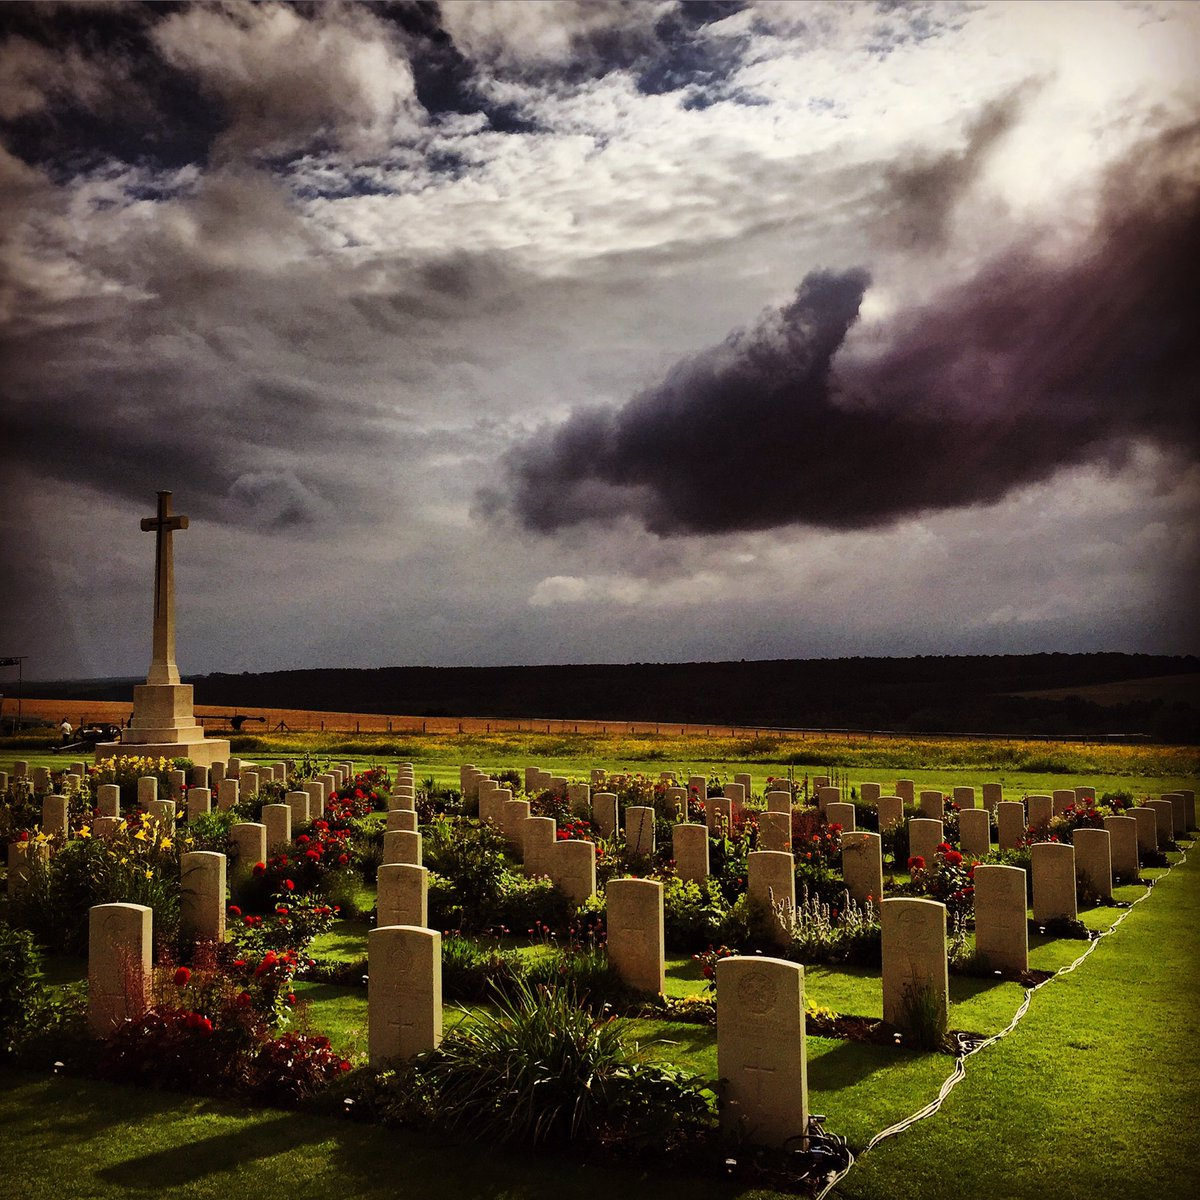 So dramatic on the Somme.  #Somme100 https://t.co/aIAZ80dQTi